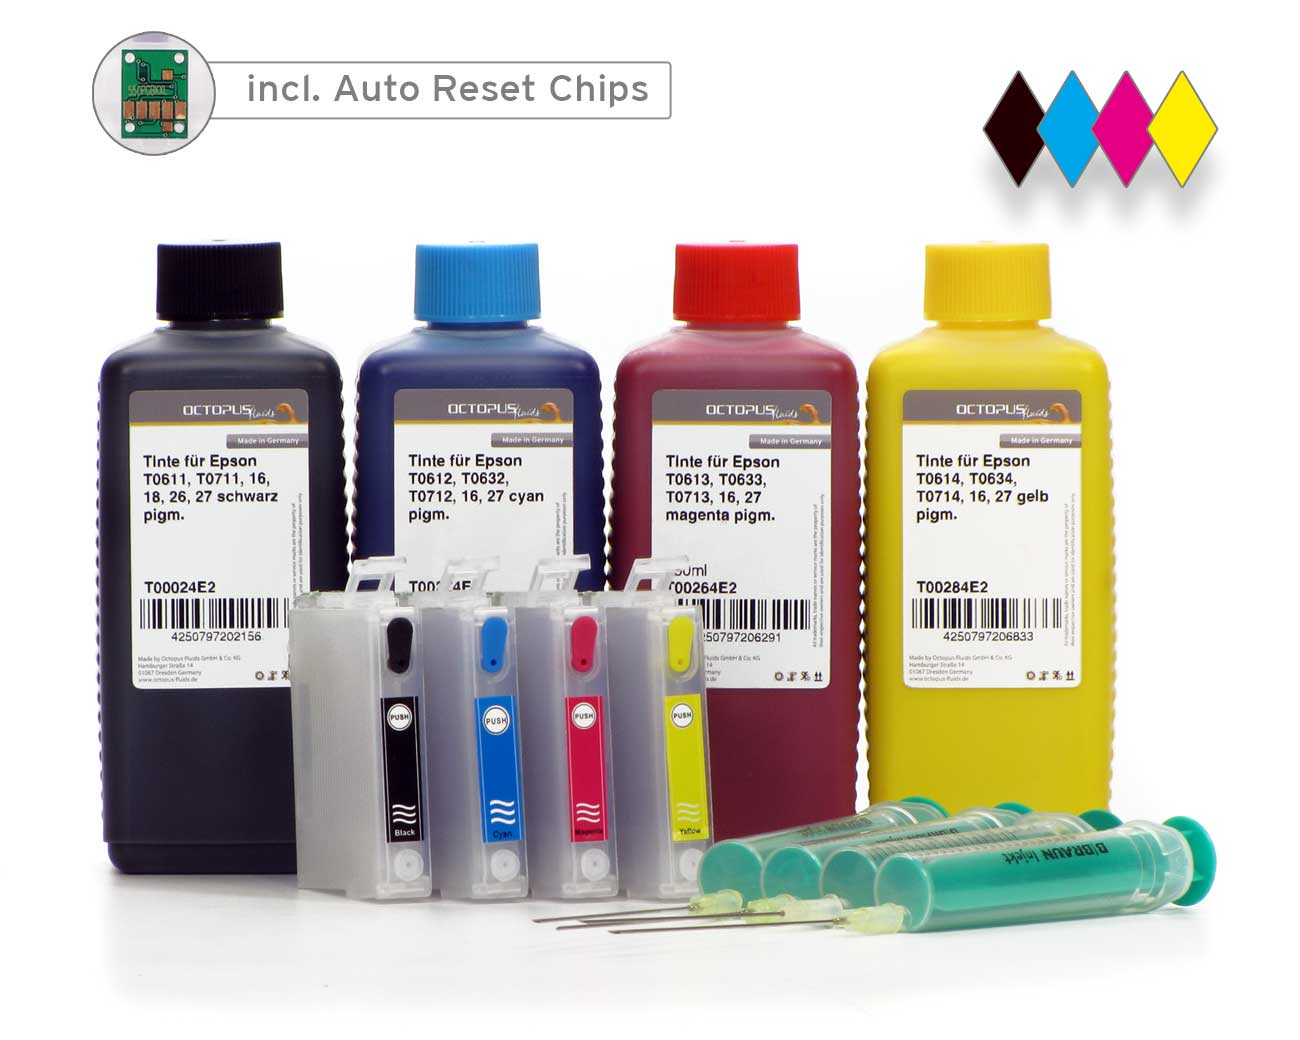 Cartucce Fill In per Epson 27 con chip Autoreset e 4x di inchiostro (no OEM)